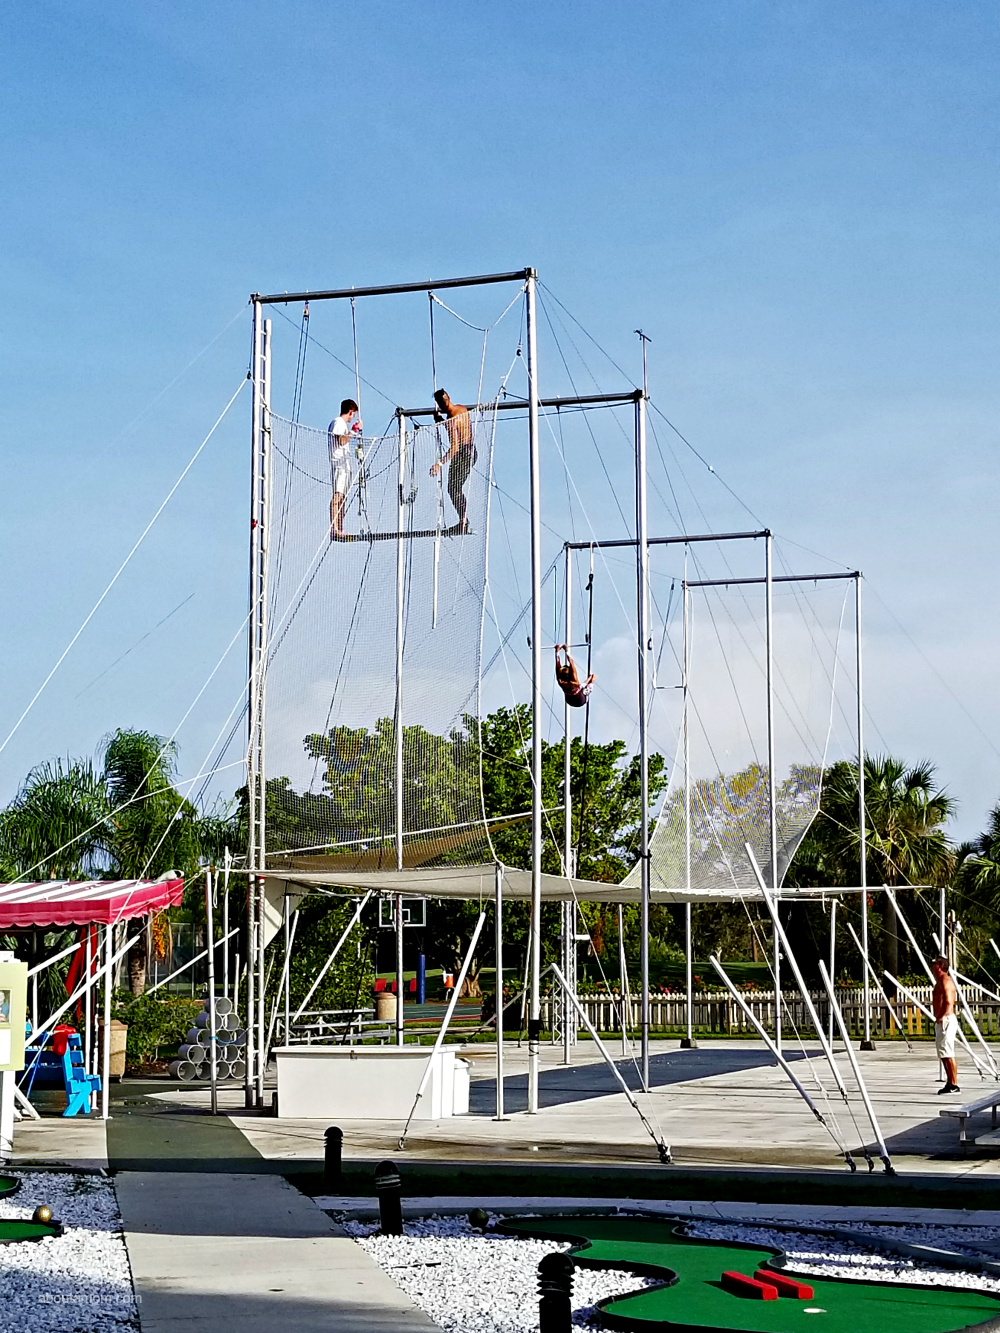 At Club Med Sandpiper Bay in Florida, you can participate in a wide array of resort activities, such as professional sports academies, yoga and even a flying trapeze! It's a great resort for active families.